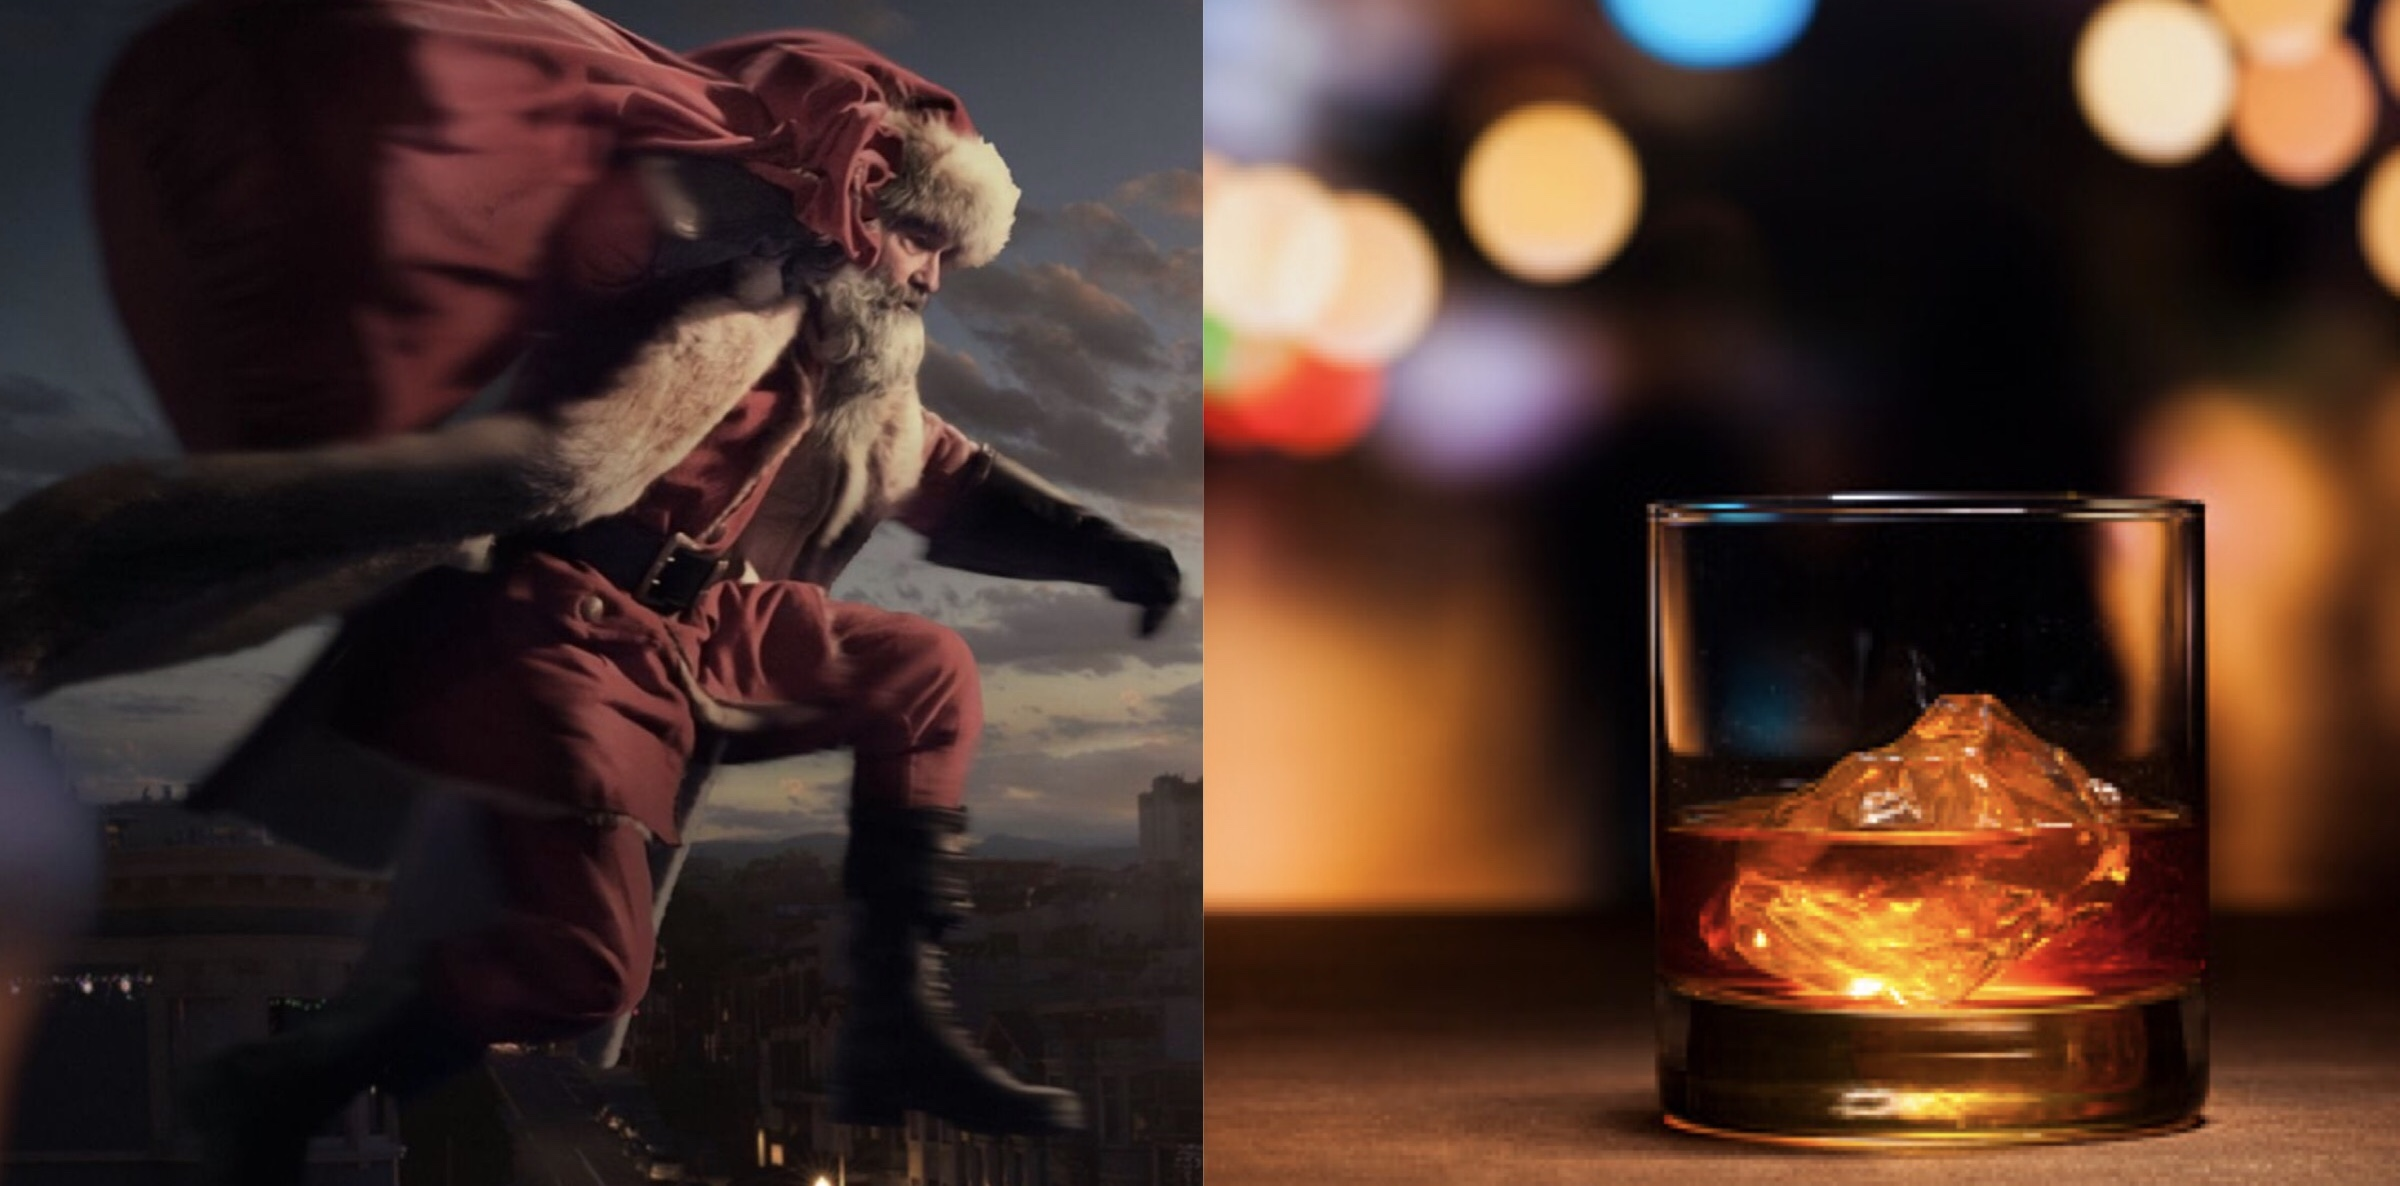 'The Christmas Chronicles' and a Single Malt Scotch